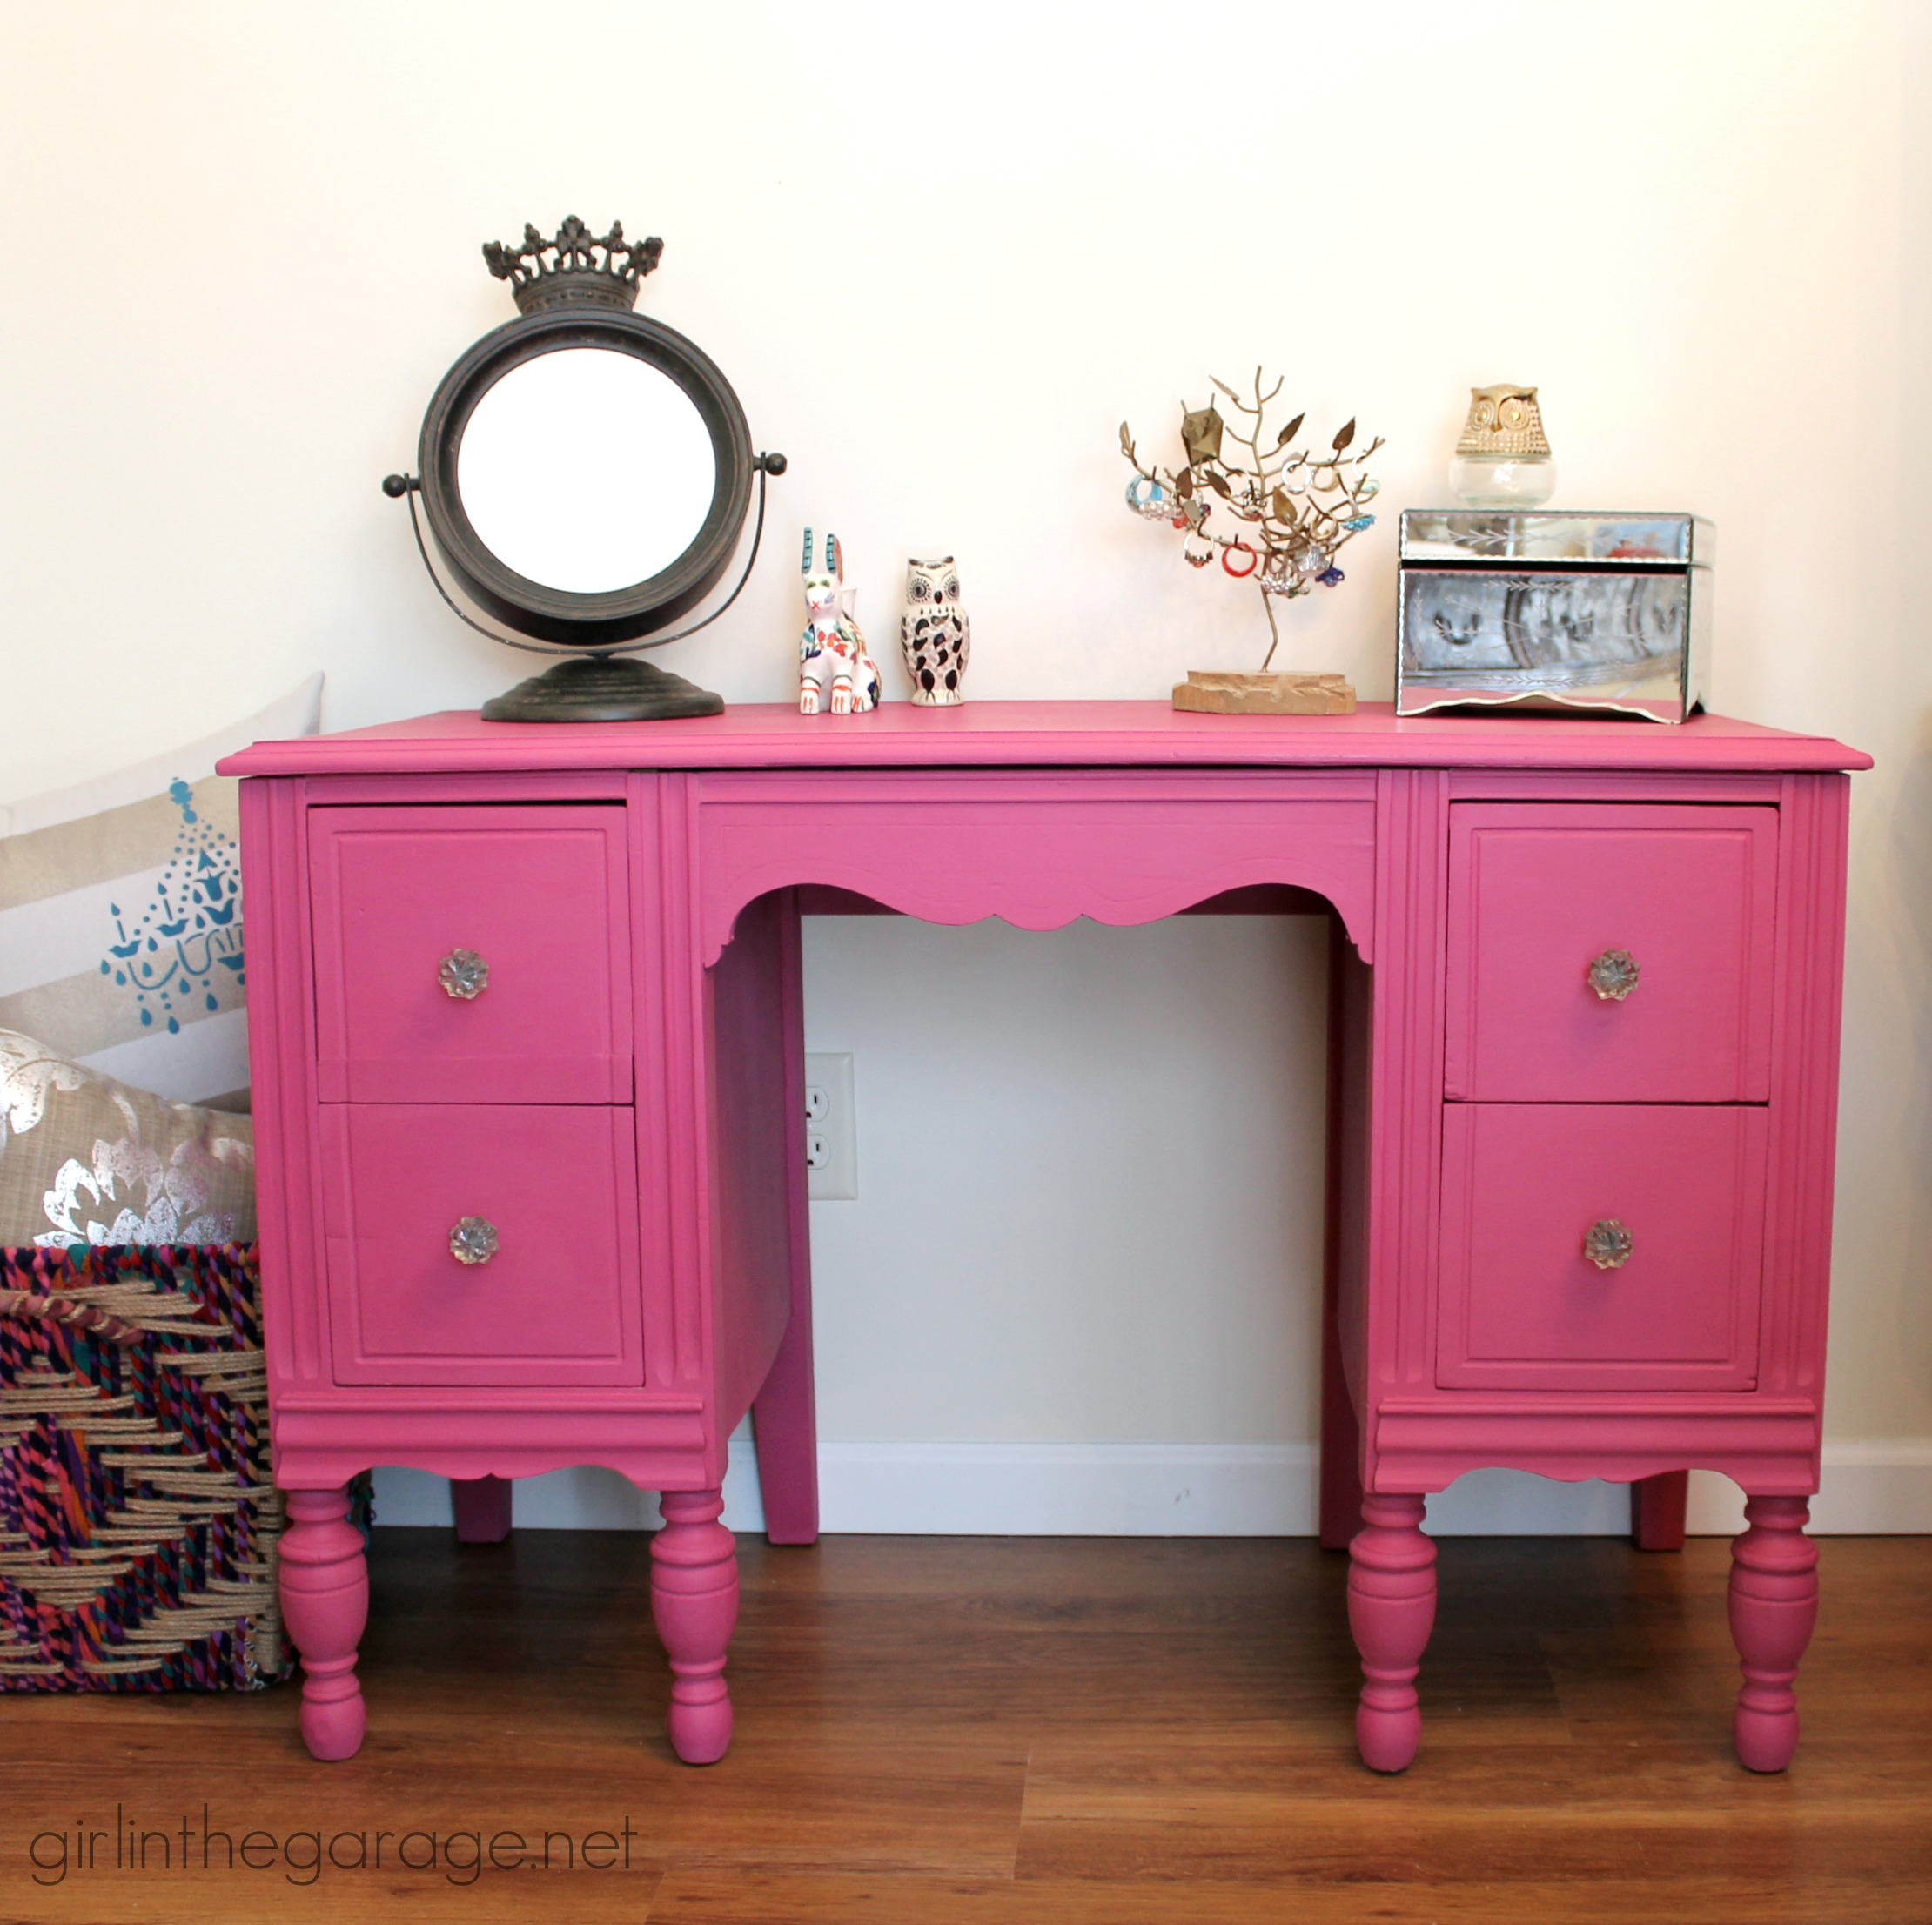 garage makeover ideas pictures - Custom Pink Chalk Paint Vanity